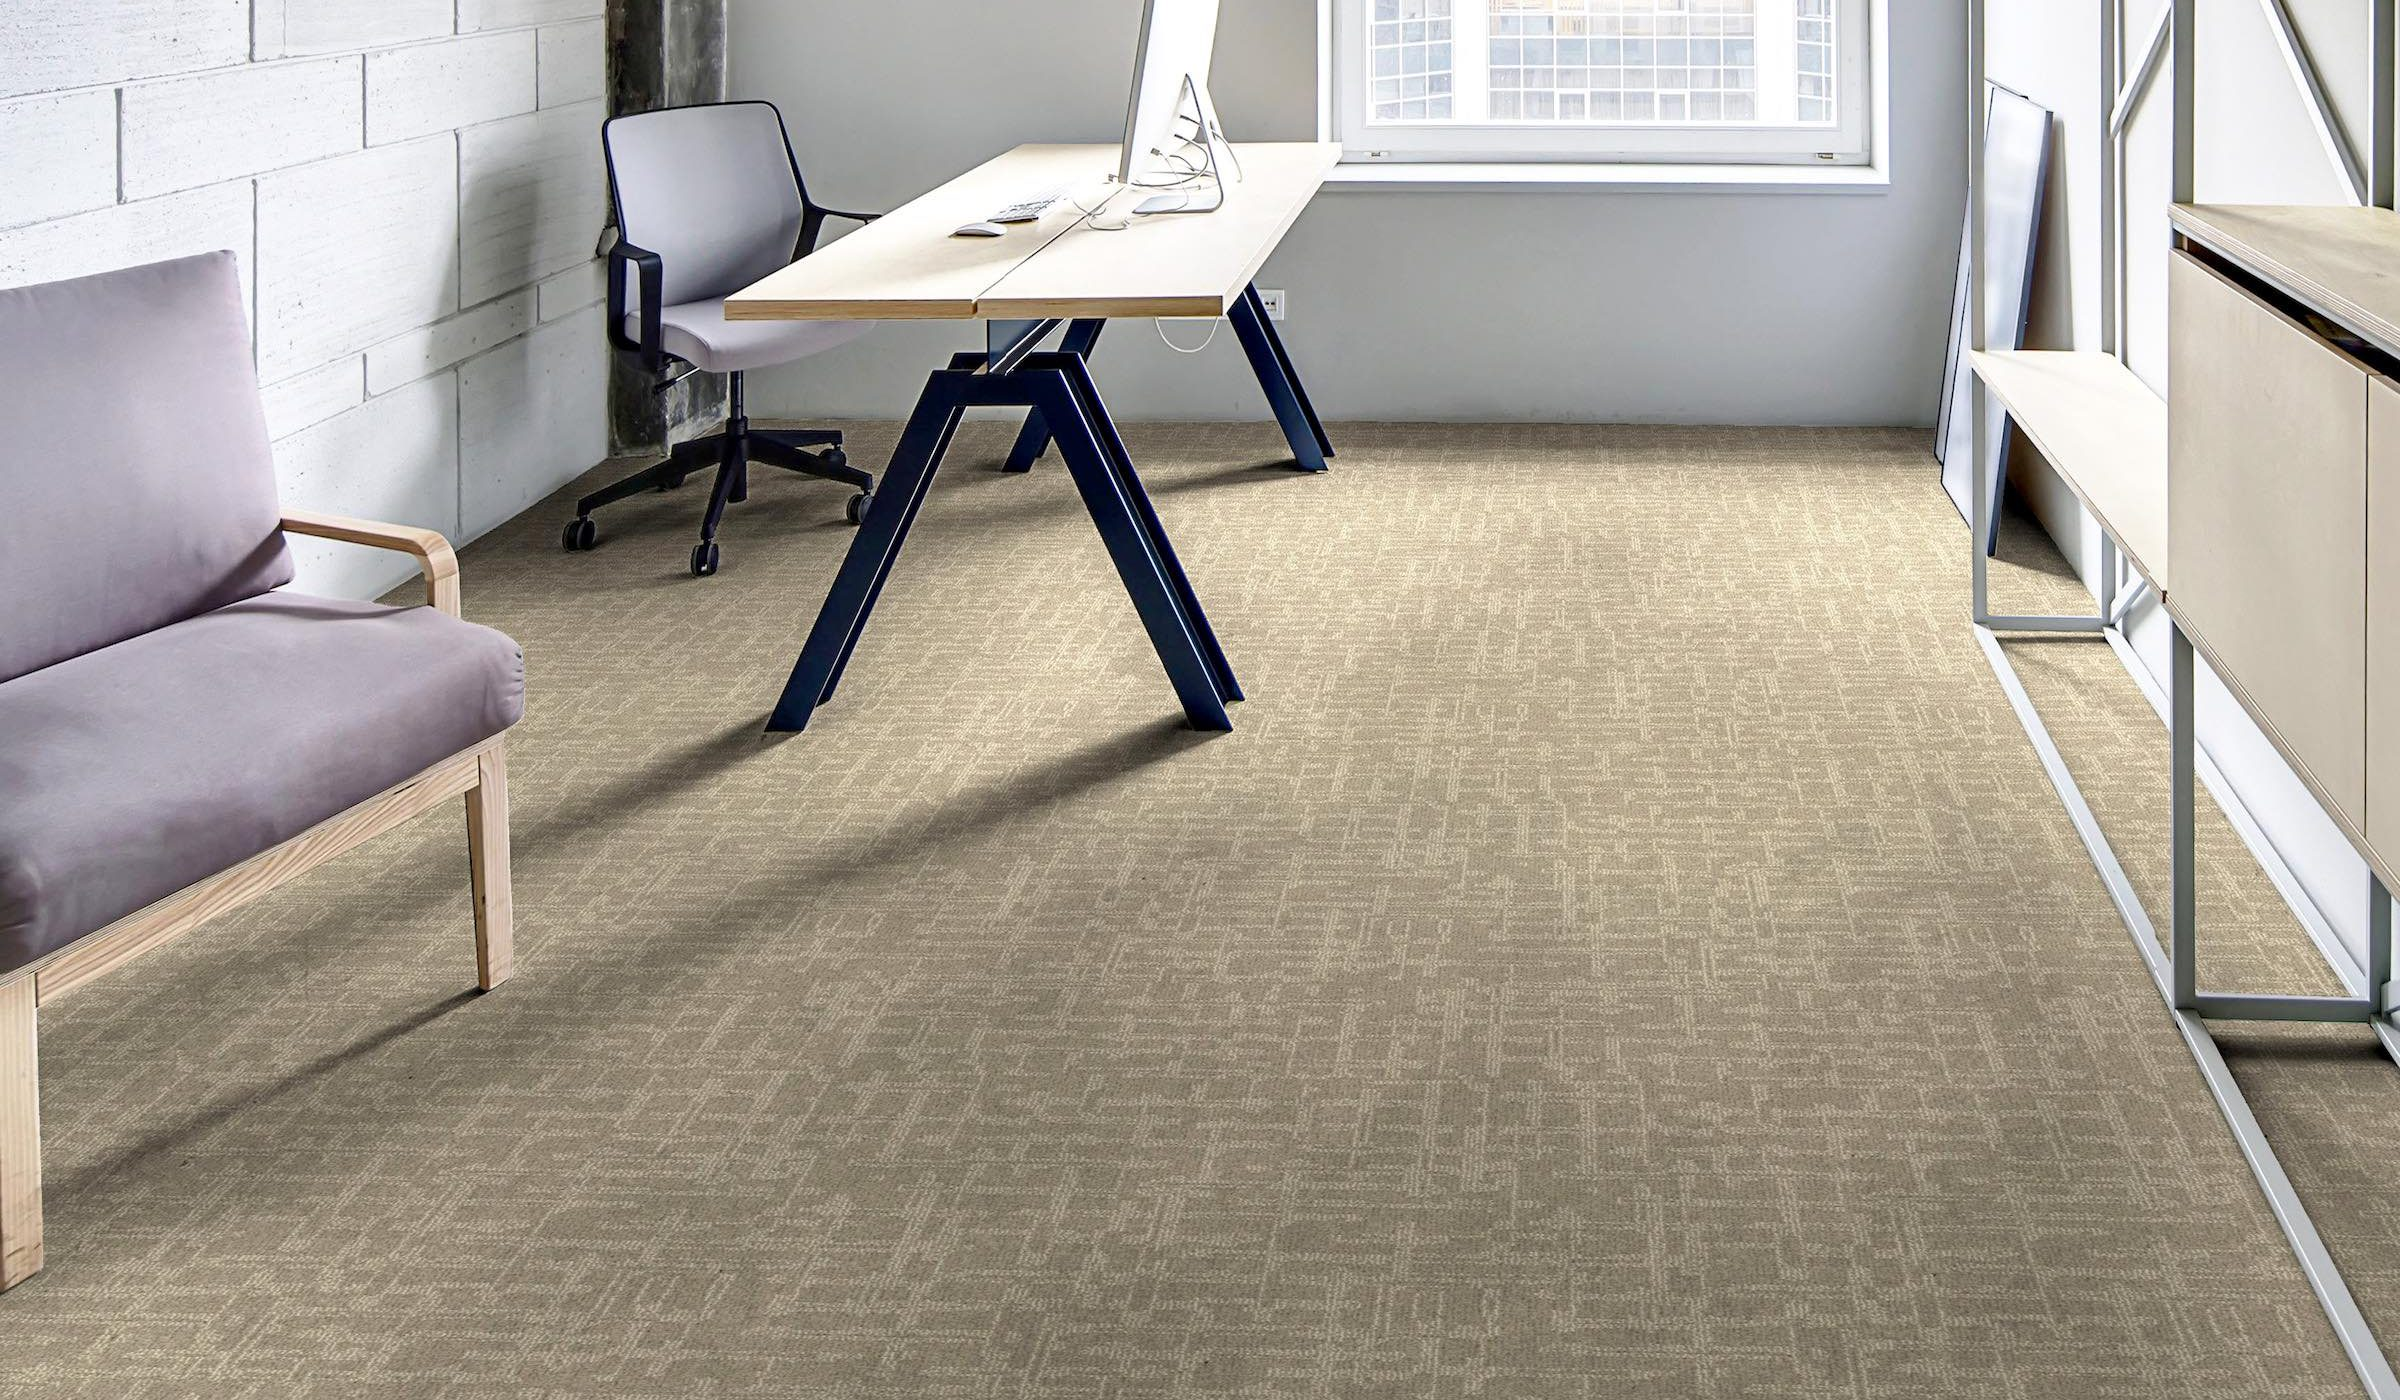 Inspiration Collection | Cresta Polar trek | Paragon Carpet Tiles | Commercial Carpet Tiles | Design Carpet Tiles